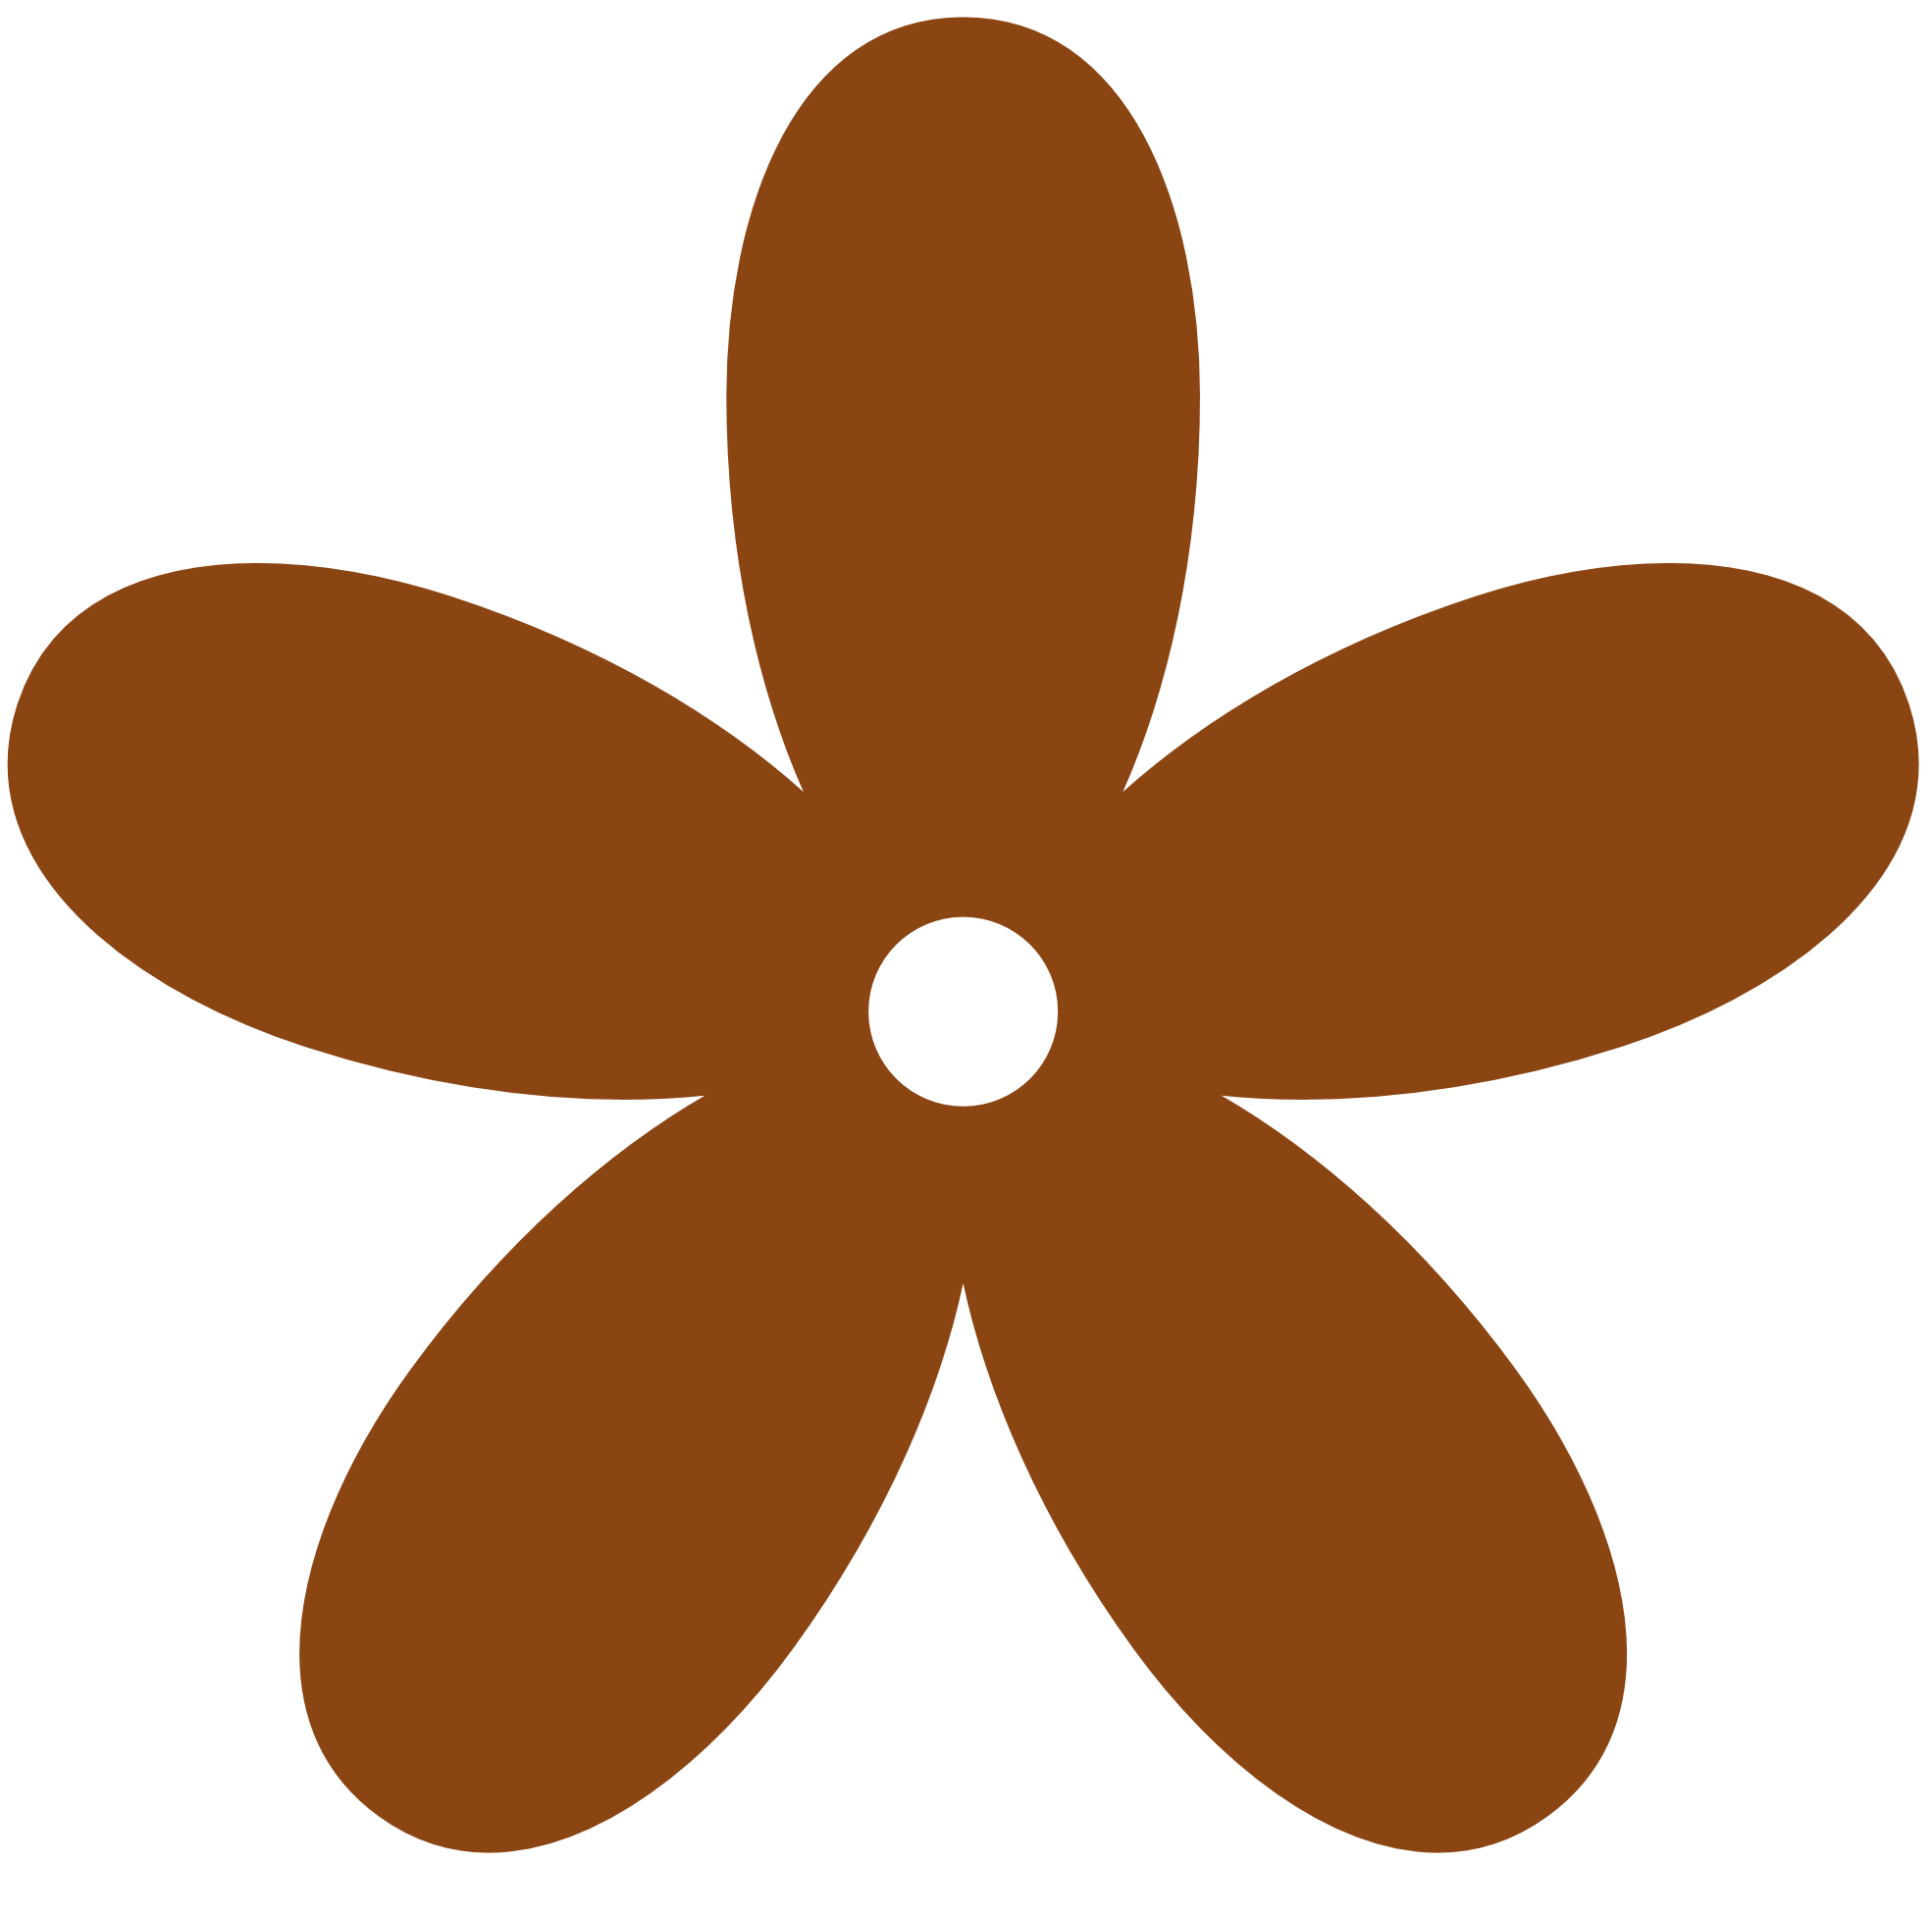 Brown clipart brown object. Color panda free images